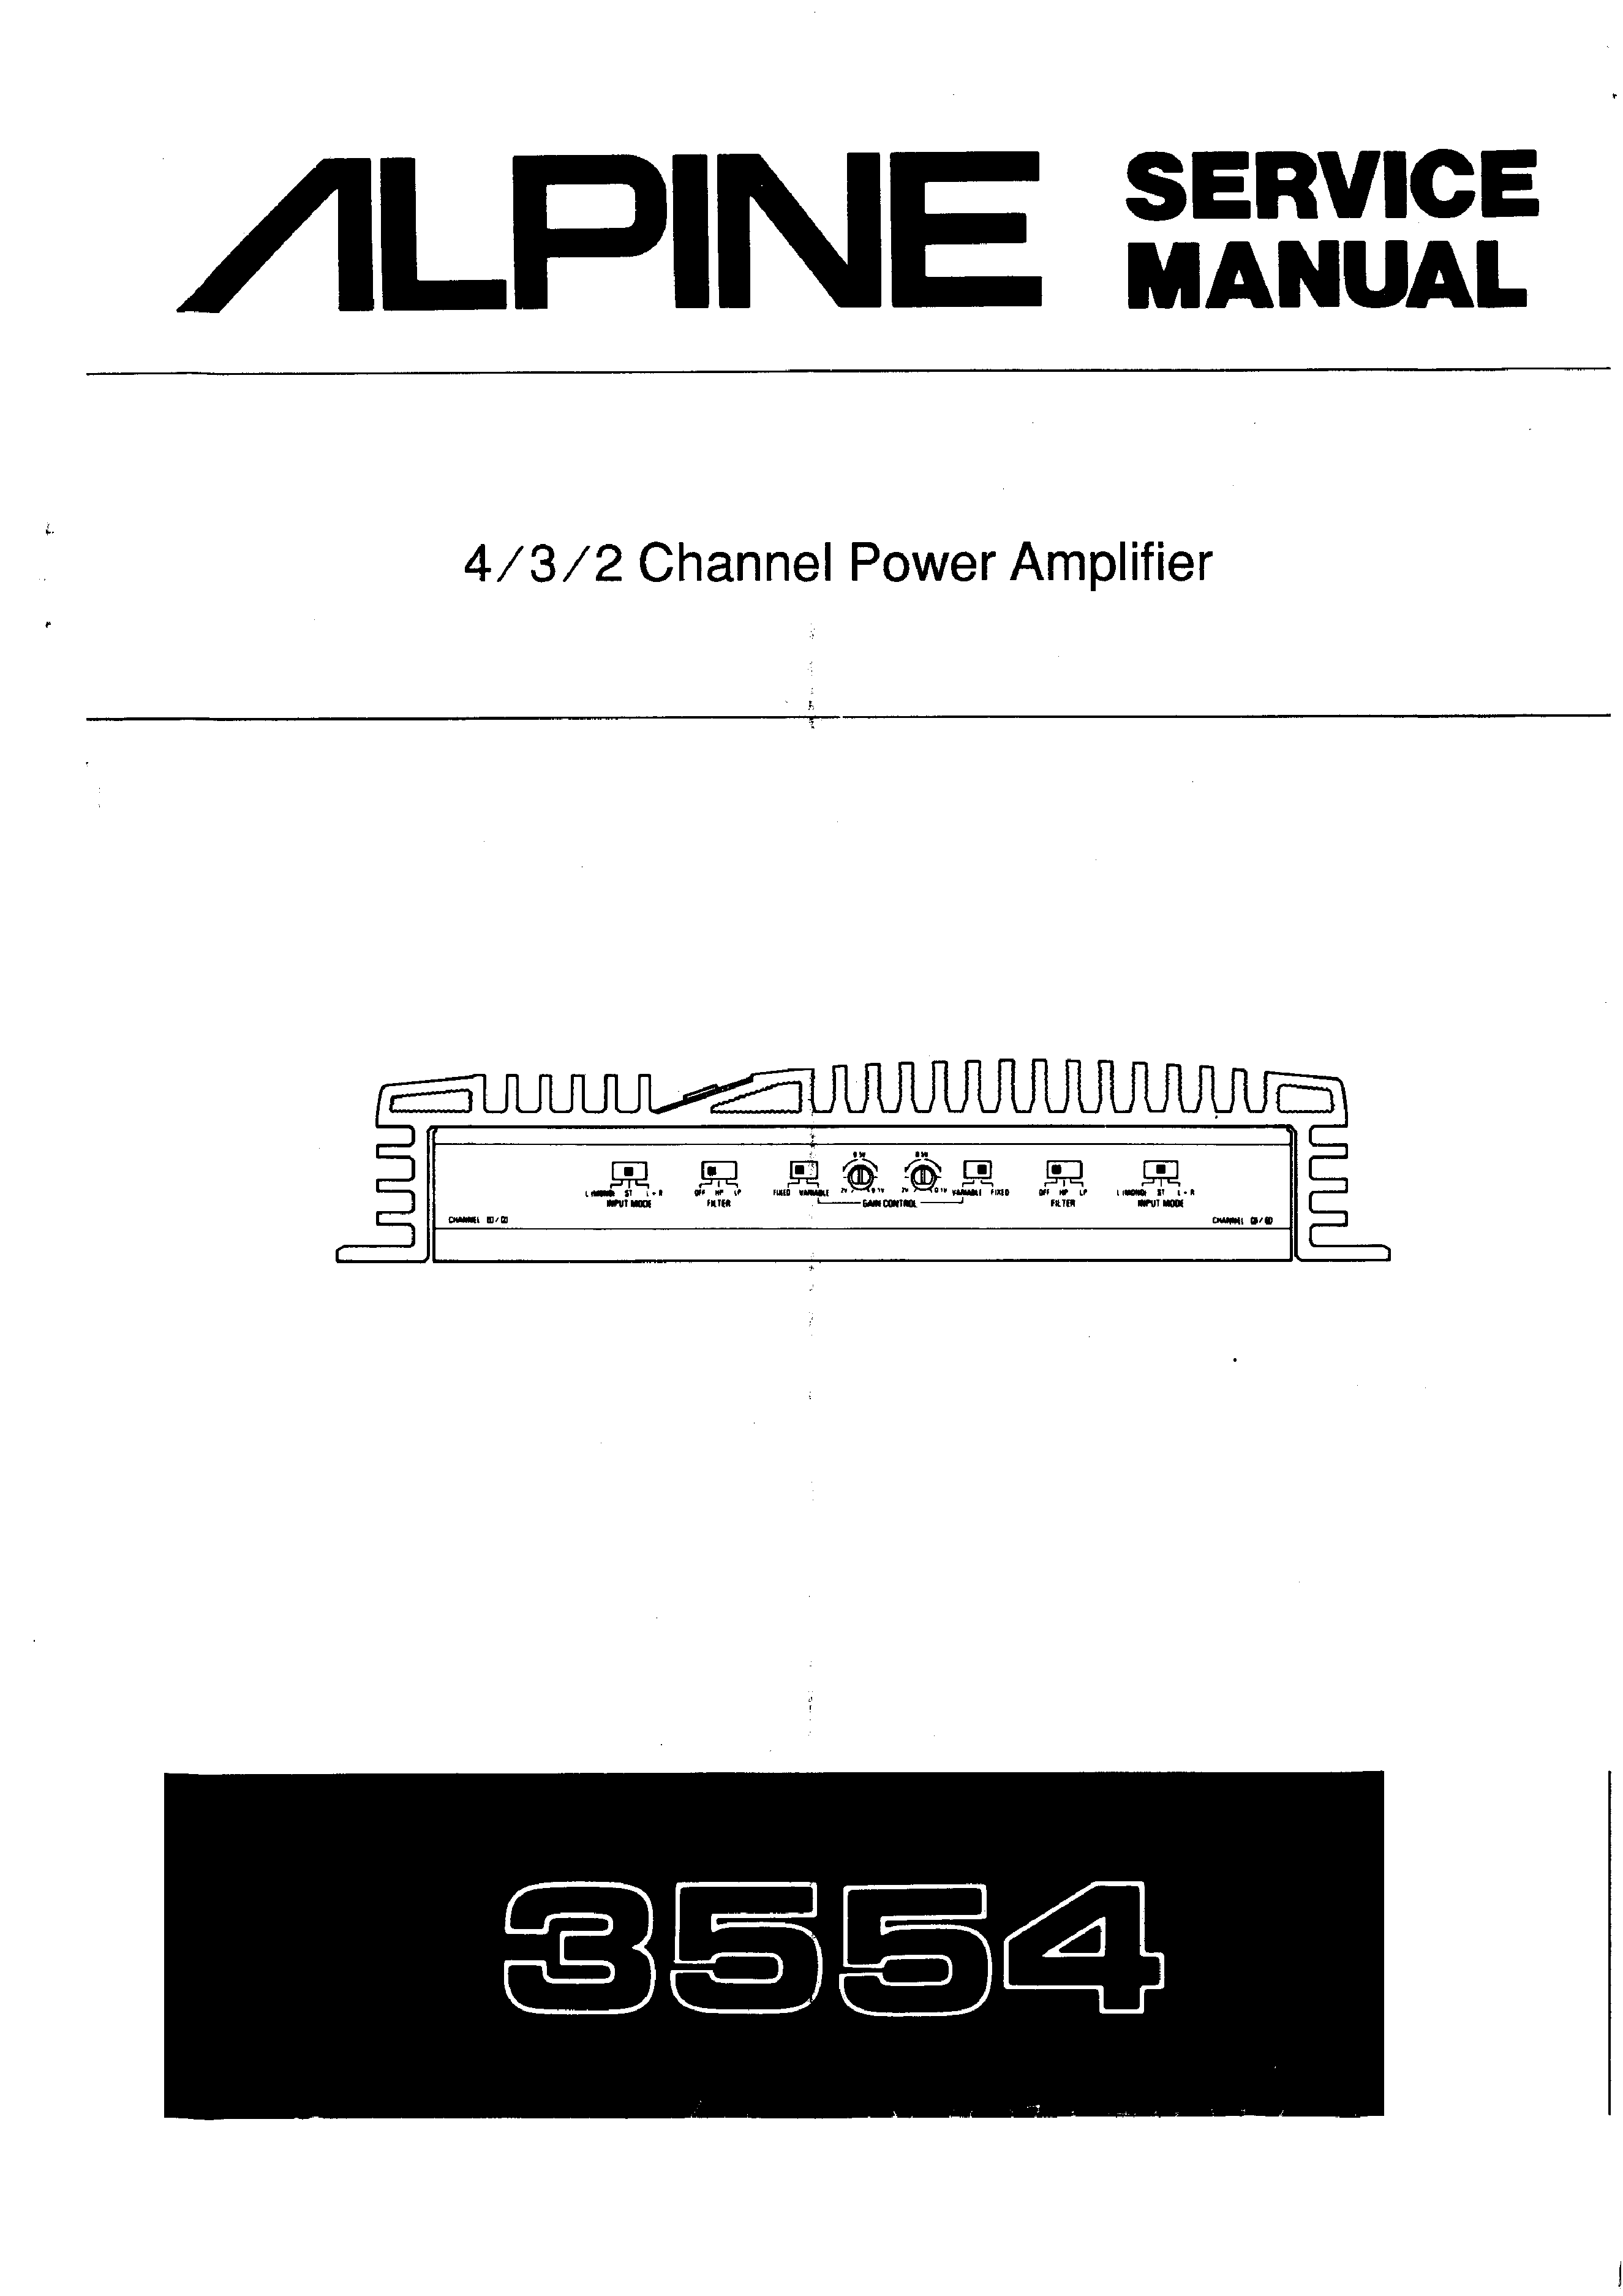 Service Manual For Alpine 3554